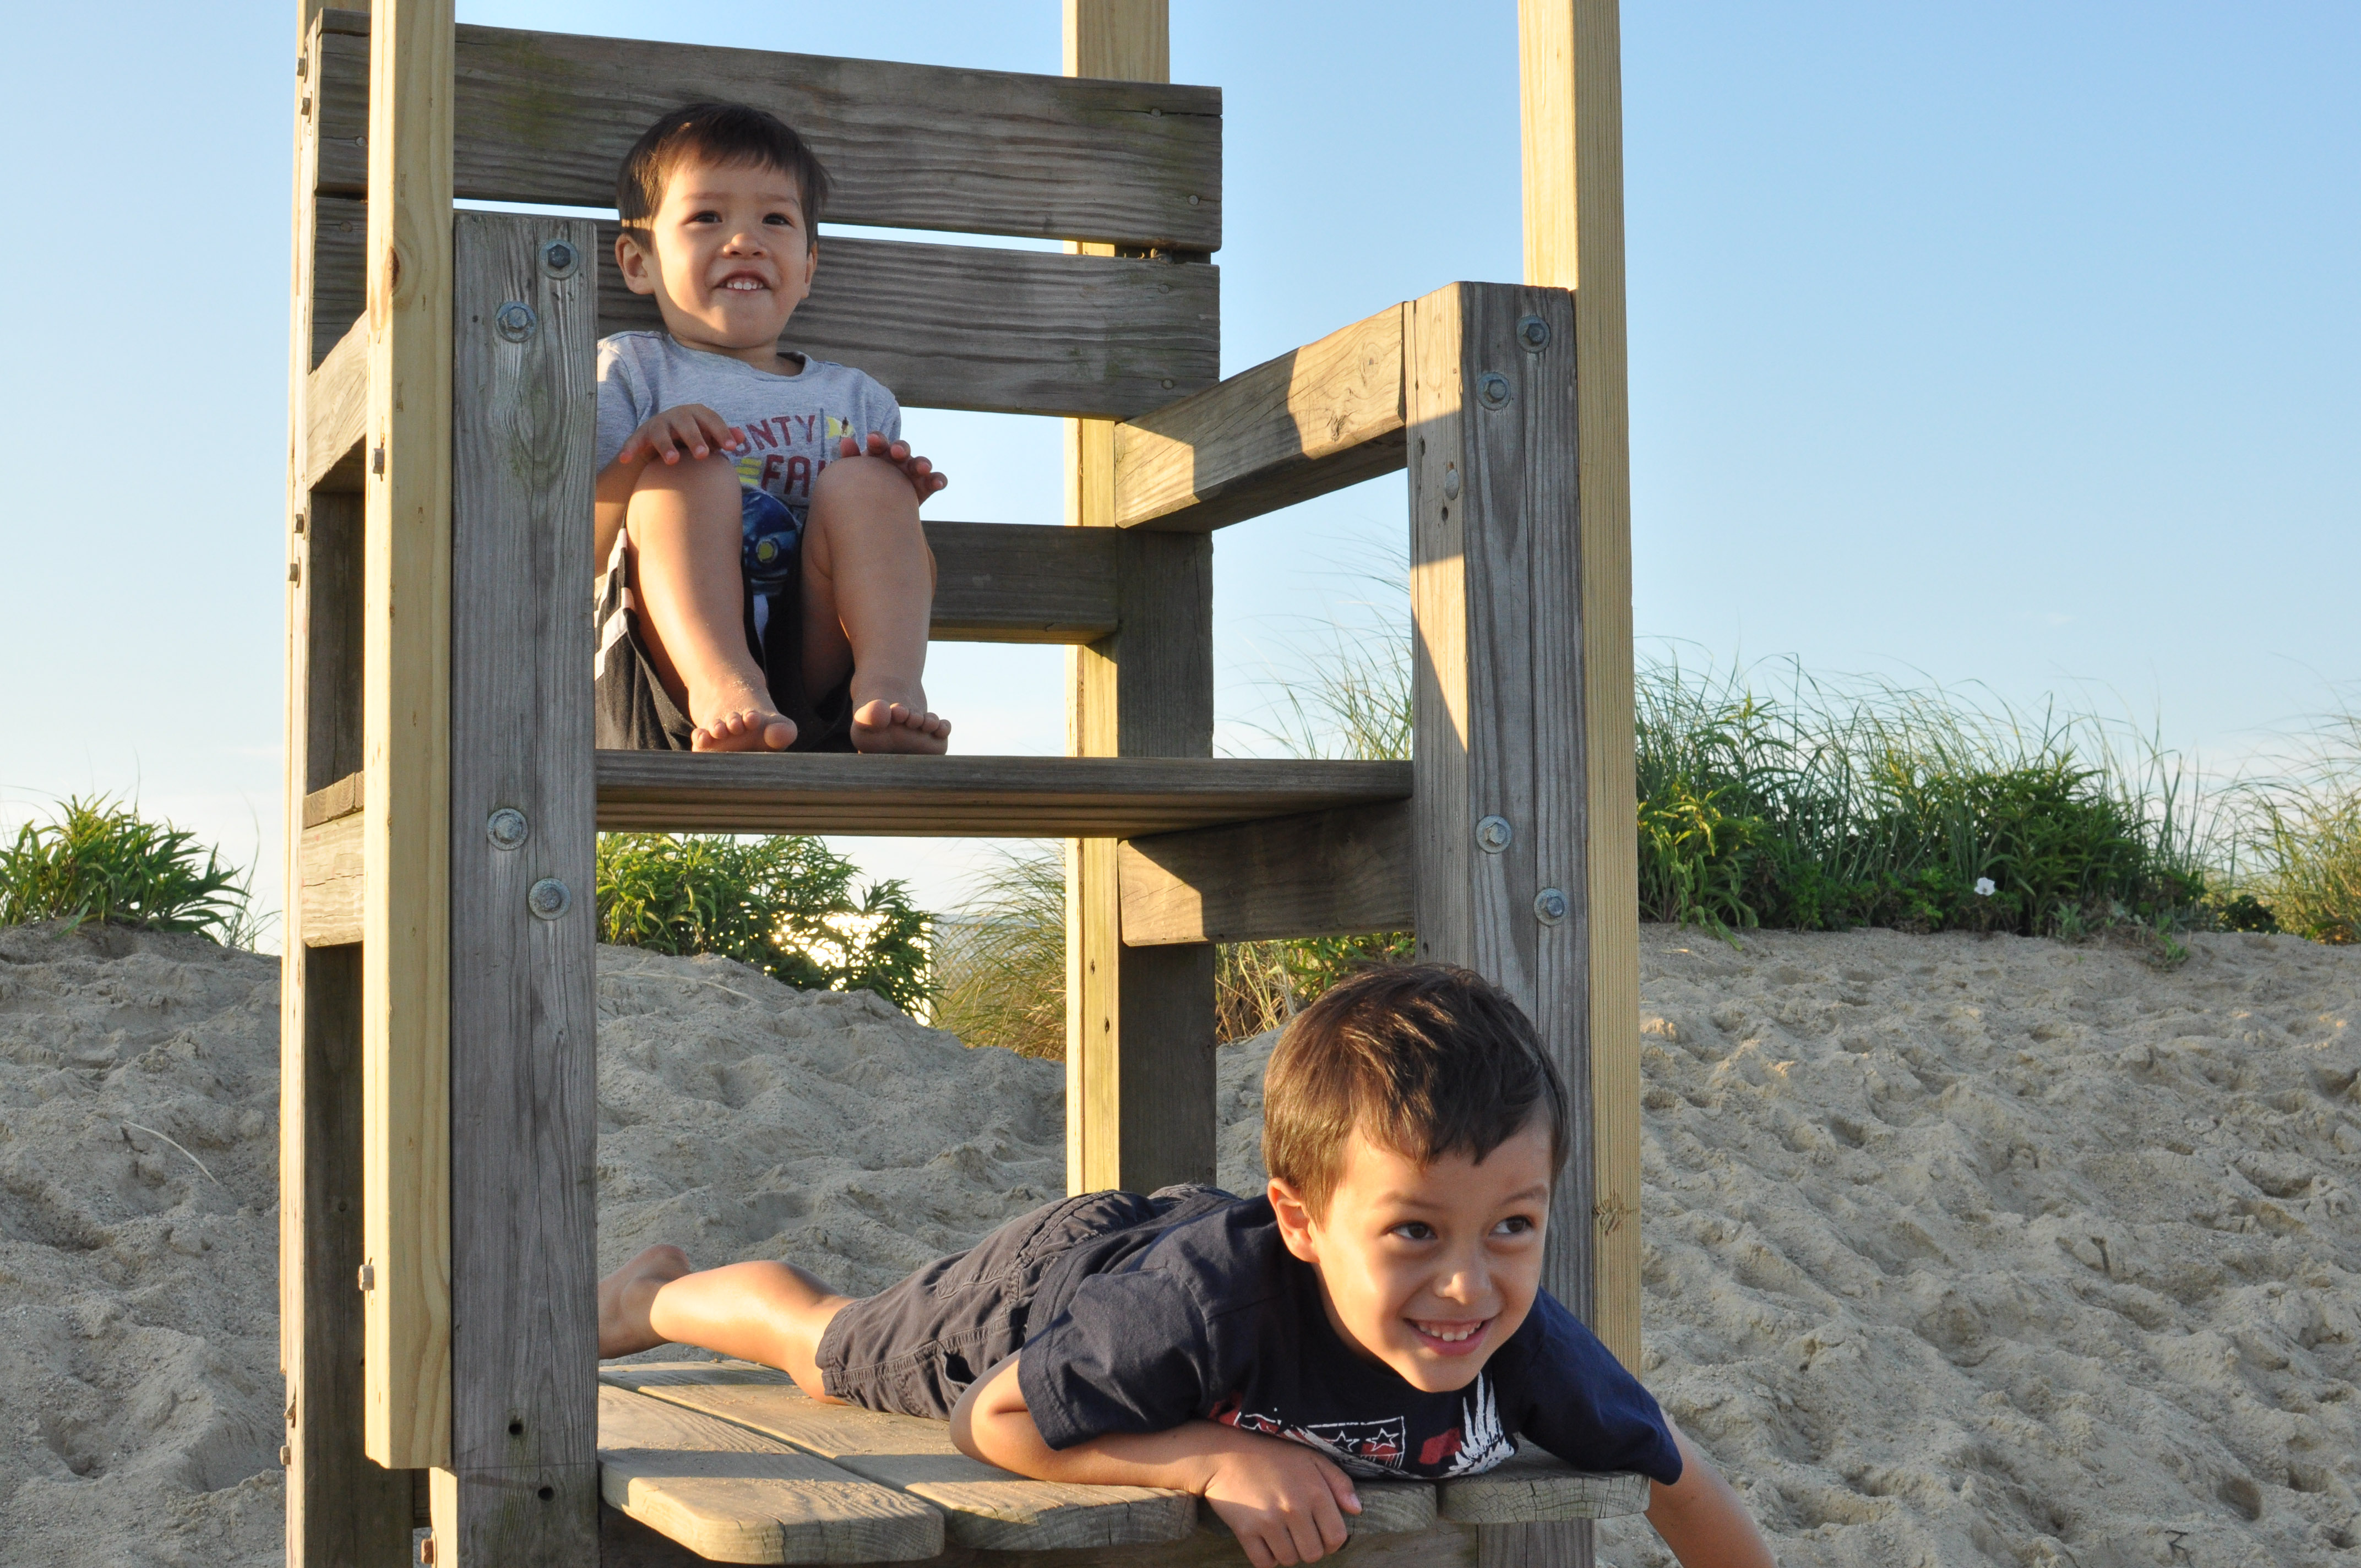 Zach and Ethan on the lifeguard chair